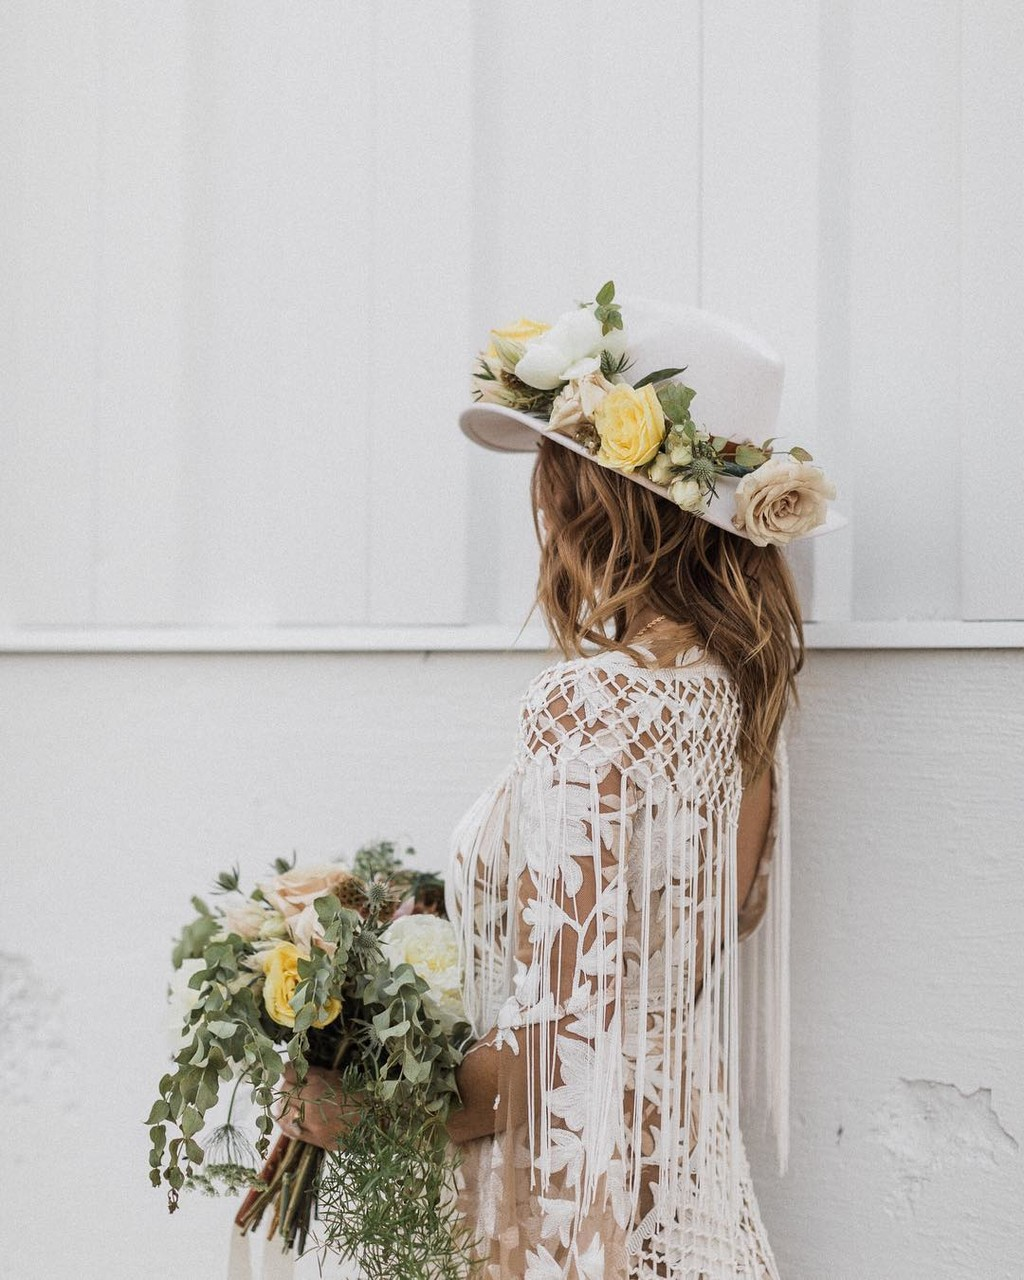 """With grace in your heart and flowers in your...hat!"" 🌸 Brides, would you rock one of these magnificent floral hats on your"